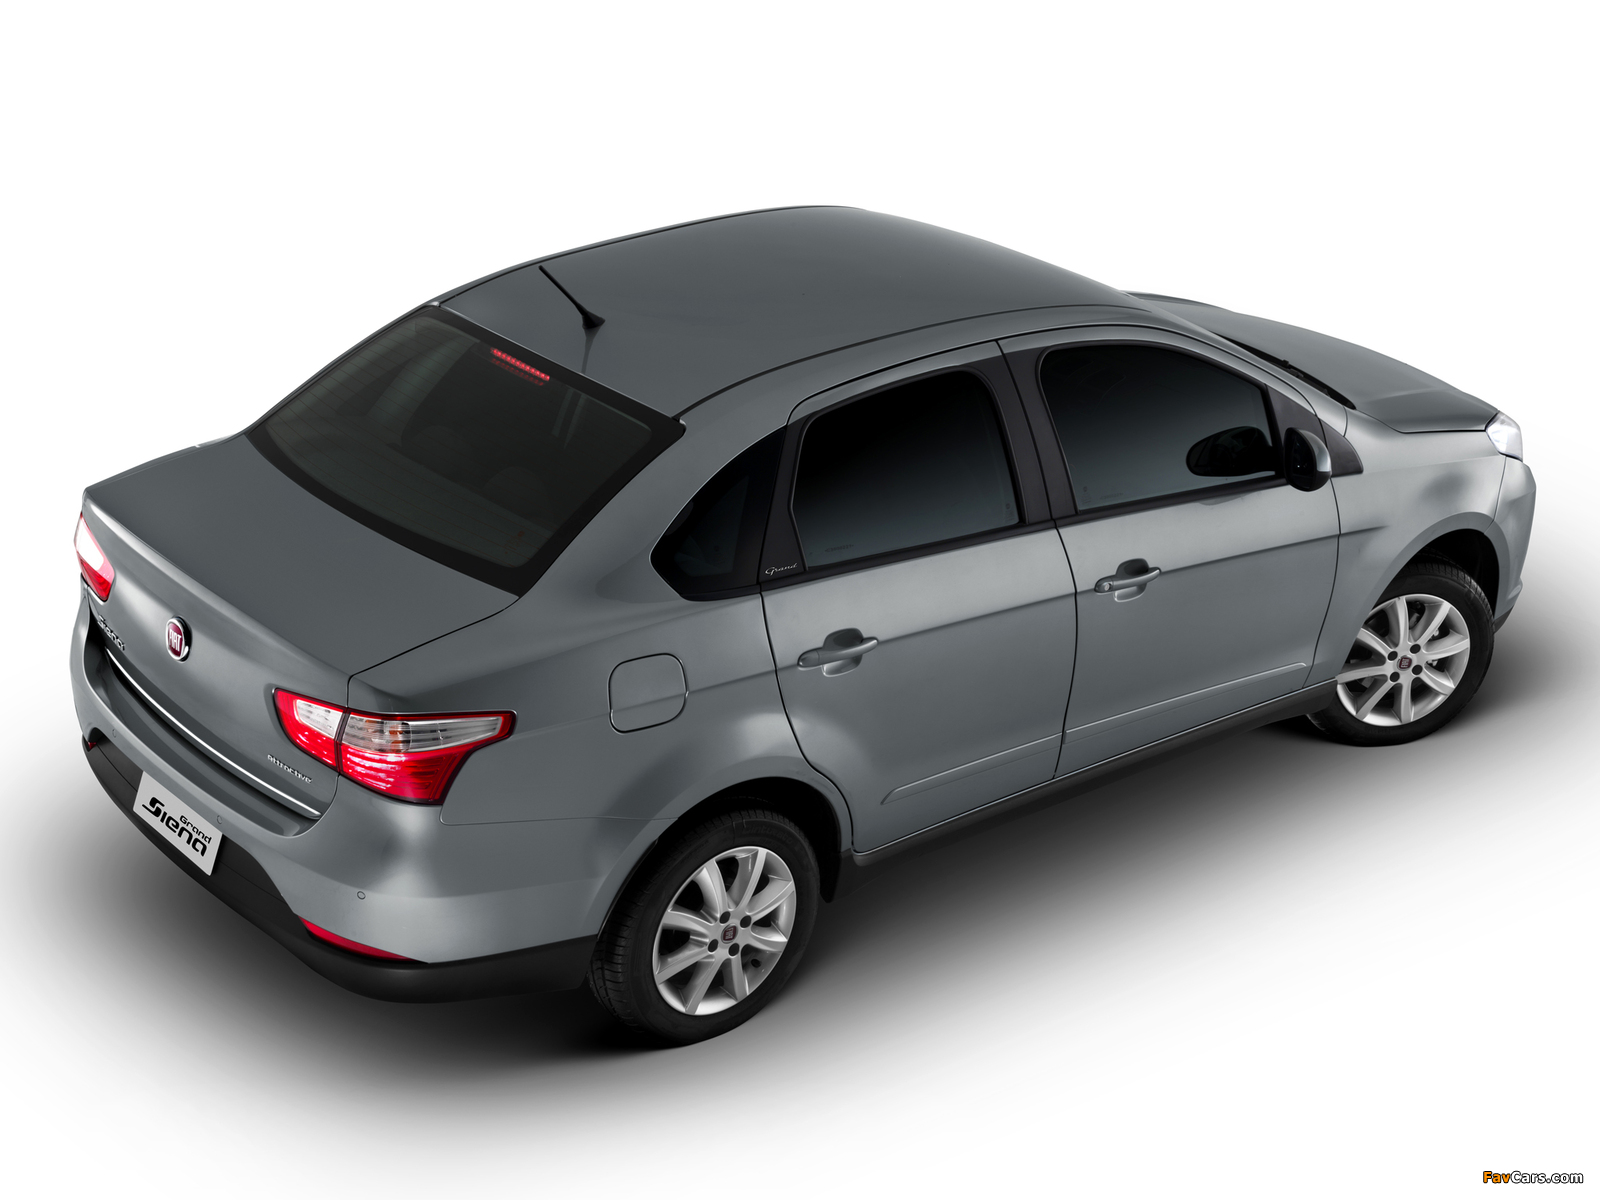 Fiat Grand Siena Attractive (326) 2012 images (1600 x 1200)